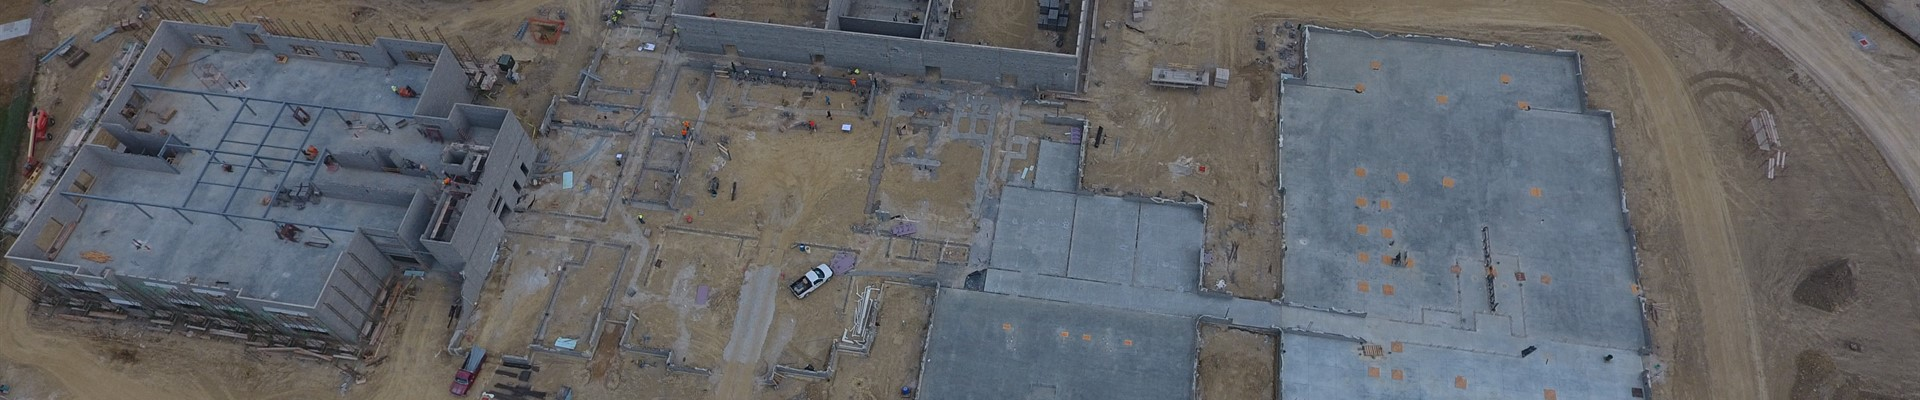 New PK-8 School Building drone view